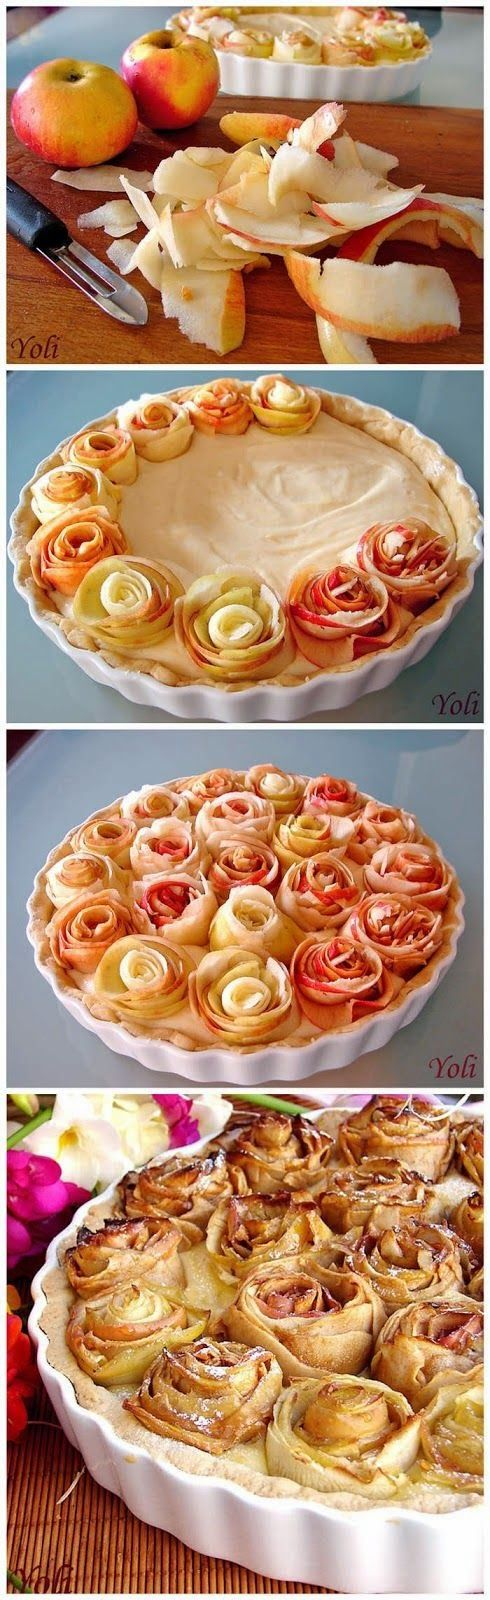 Apple pie with roses. I so want to make this! Beautiful and delicious!: